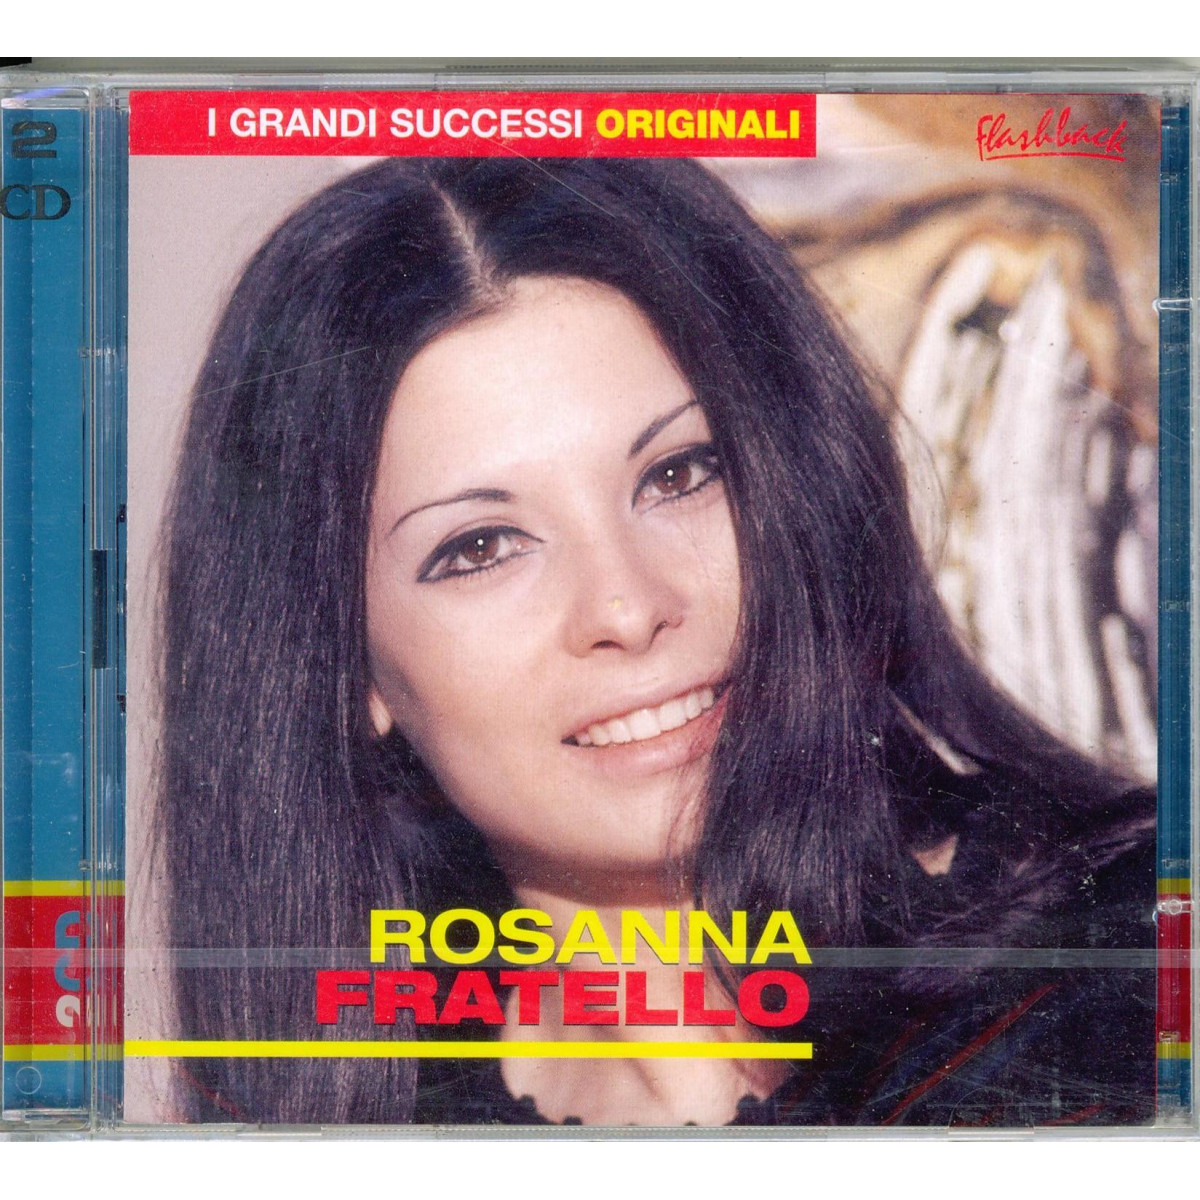 Rosanna Fratello CD I Grandi Successi Originali Flashback Sig 0743218198526